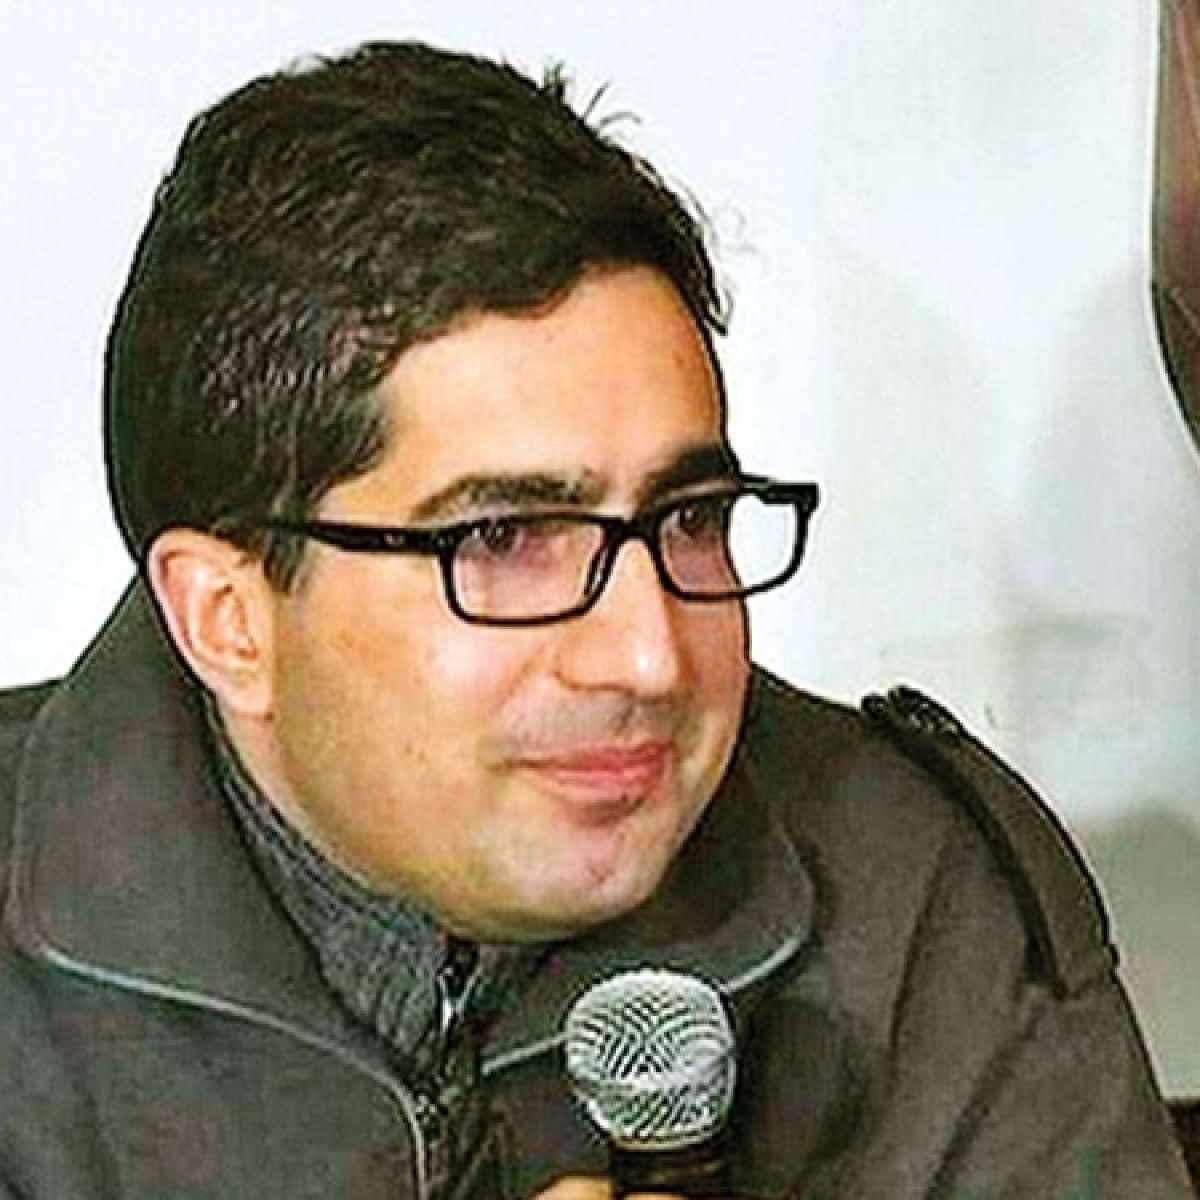 Shah Faesal was not going to US to study: Police